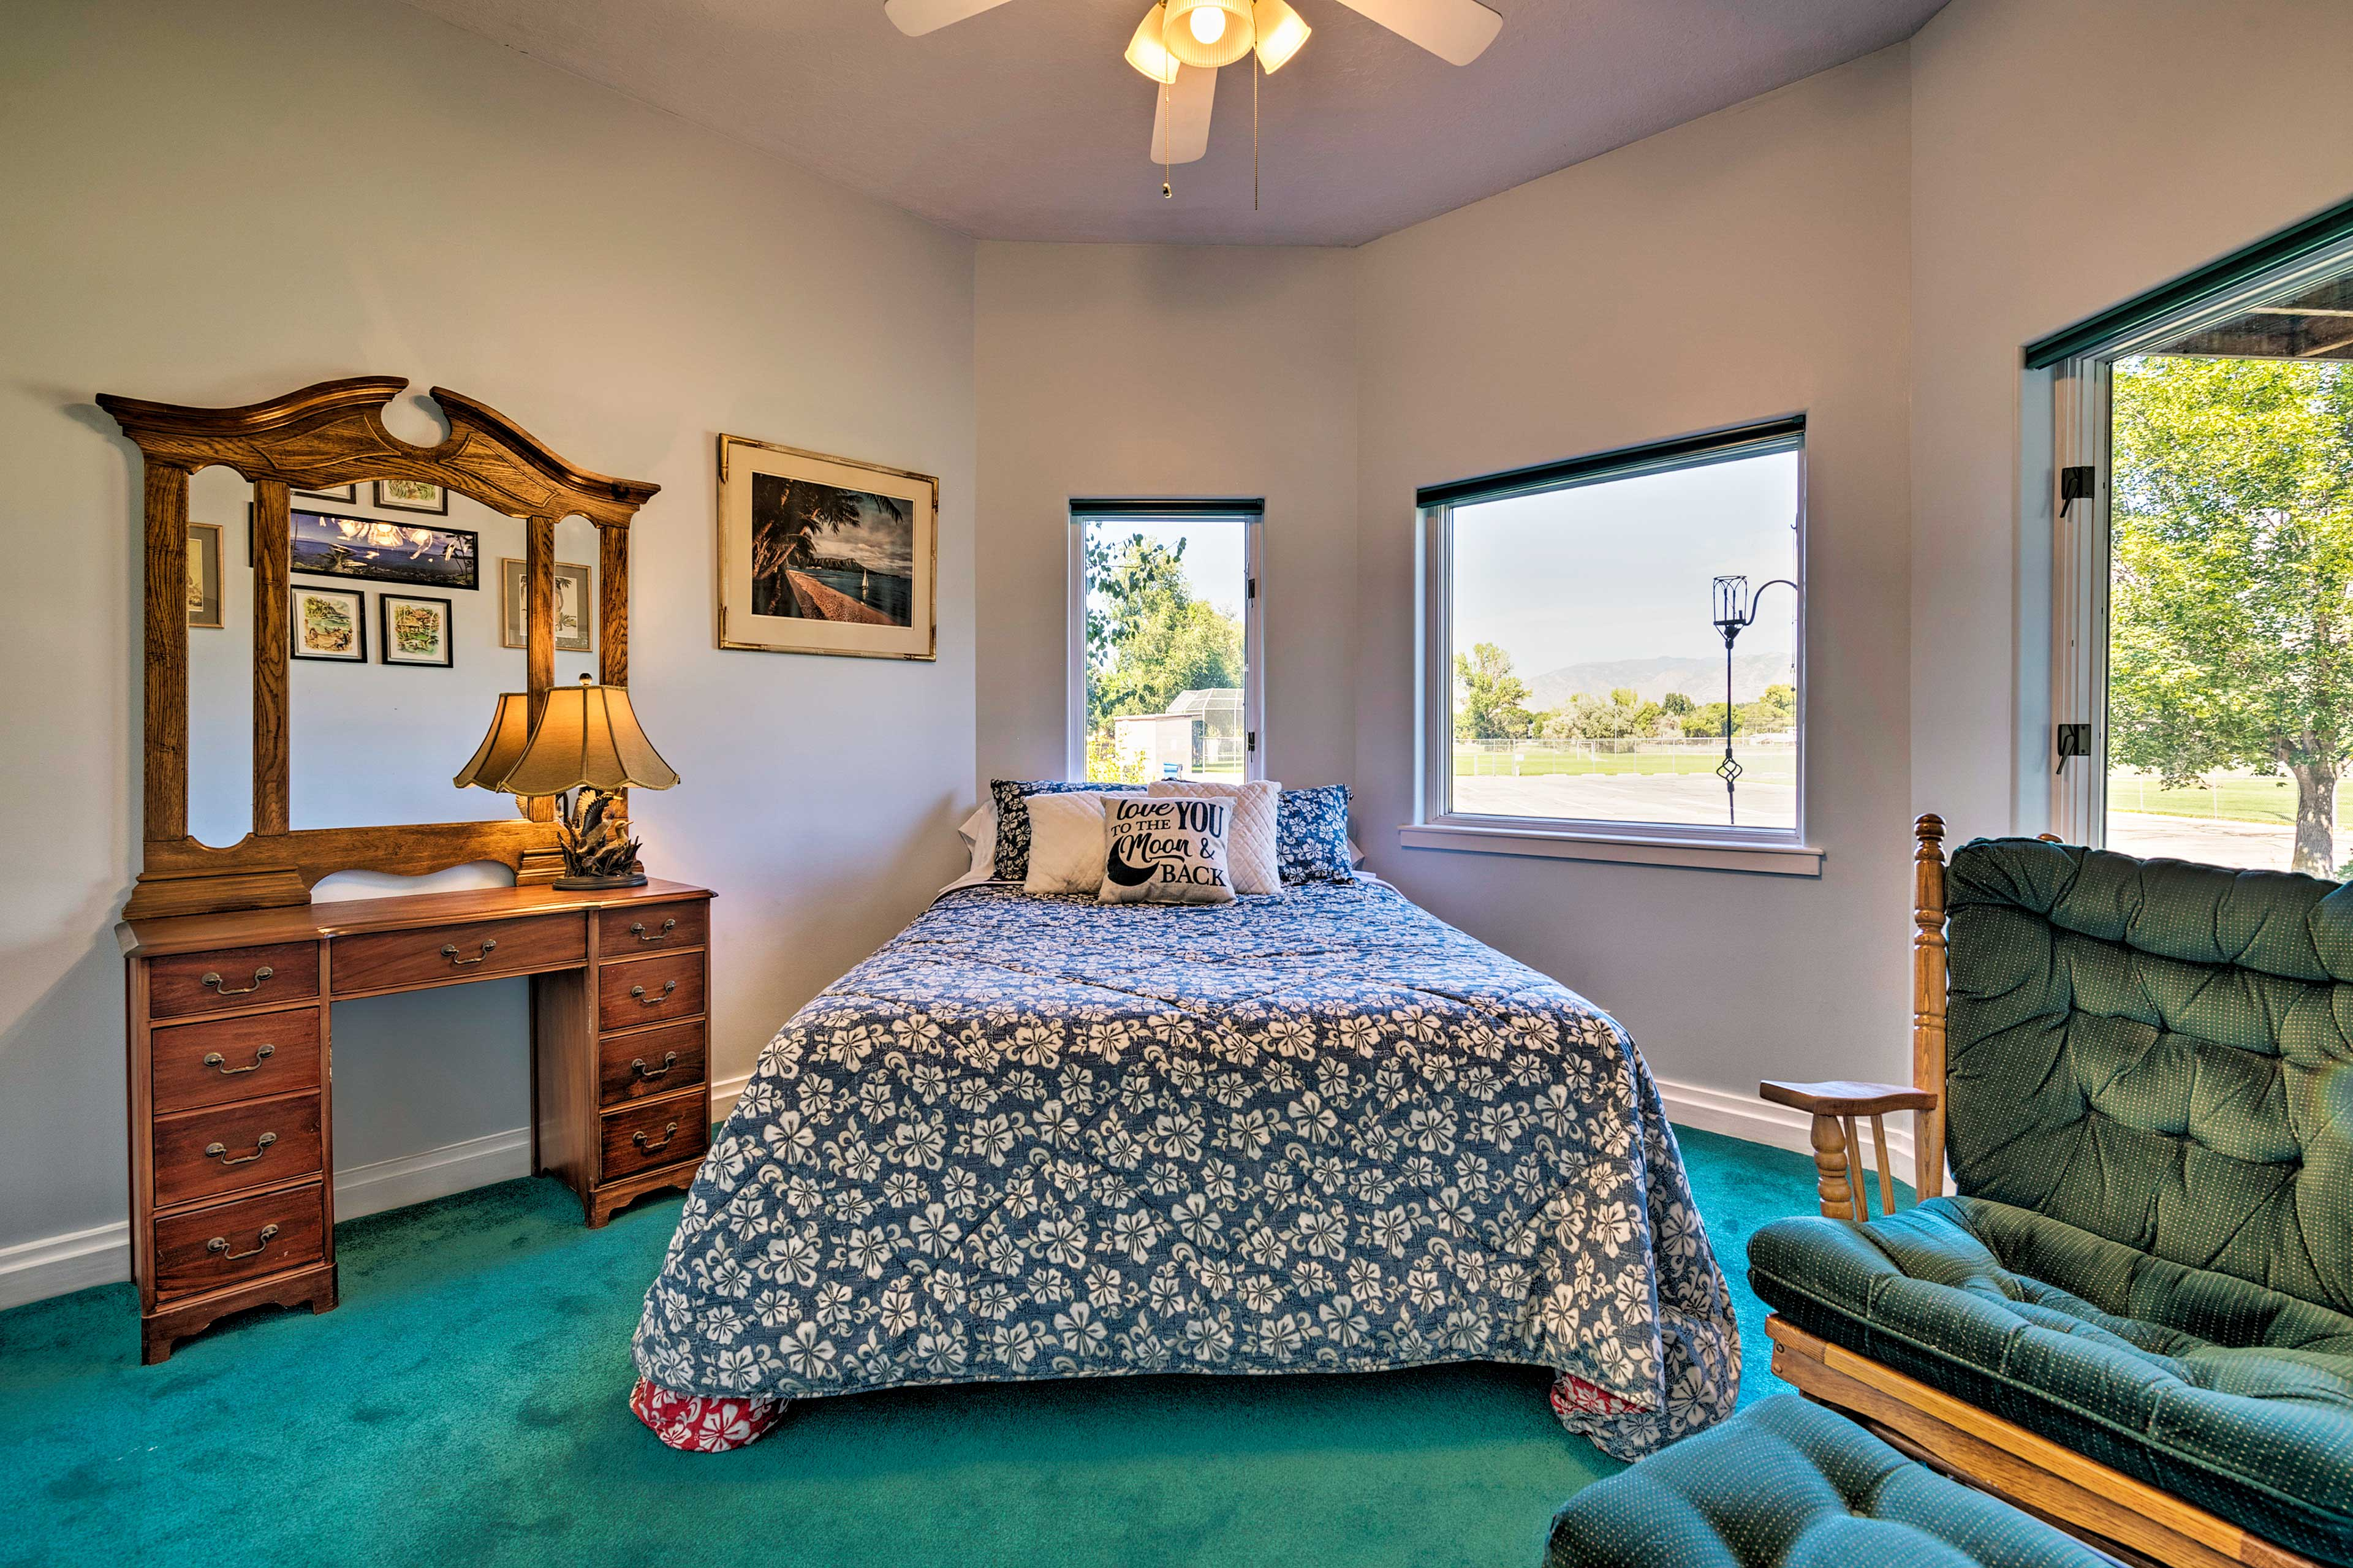 Claim the master bedroom as your own!